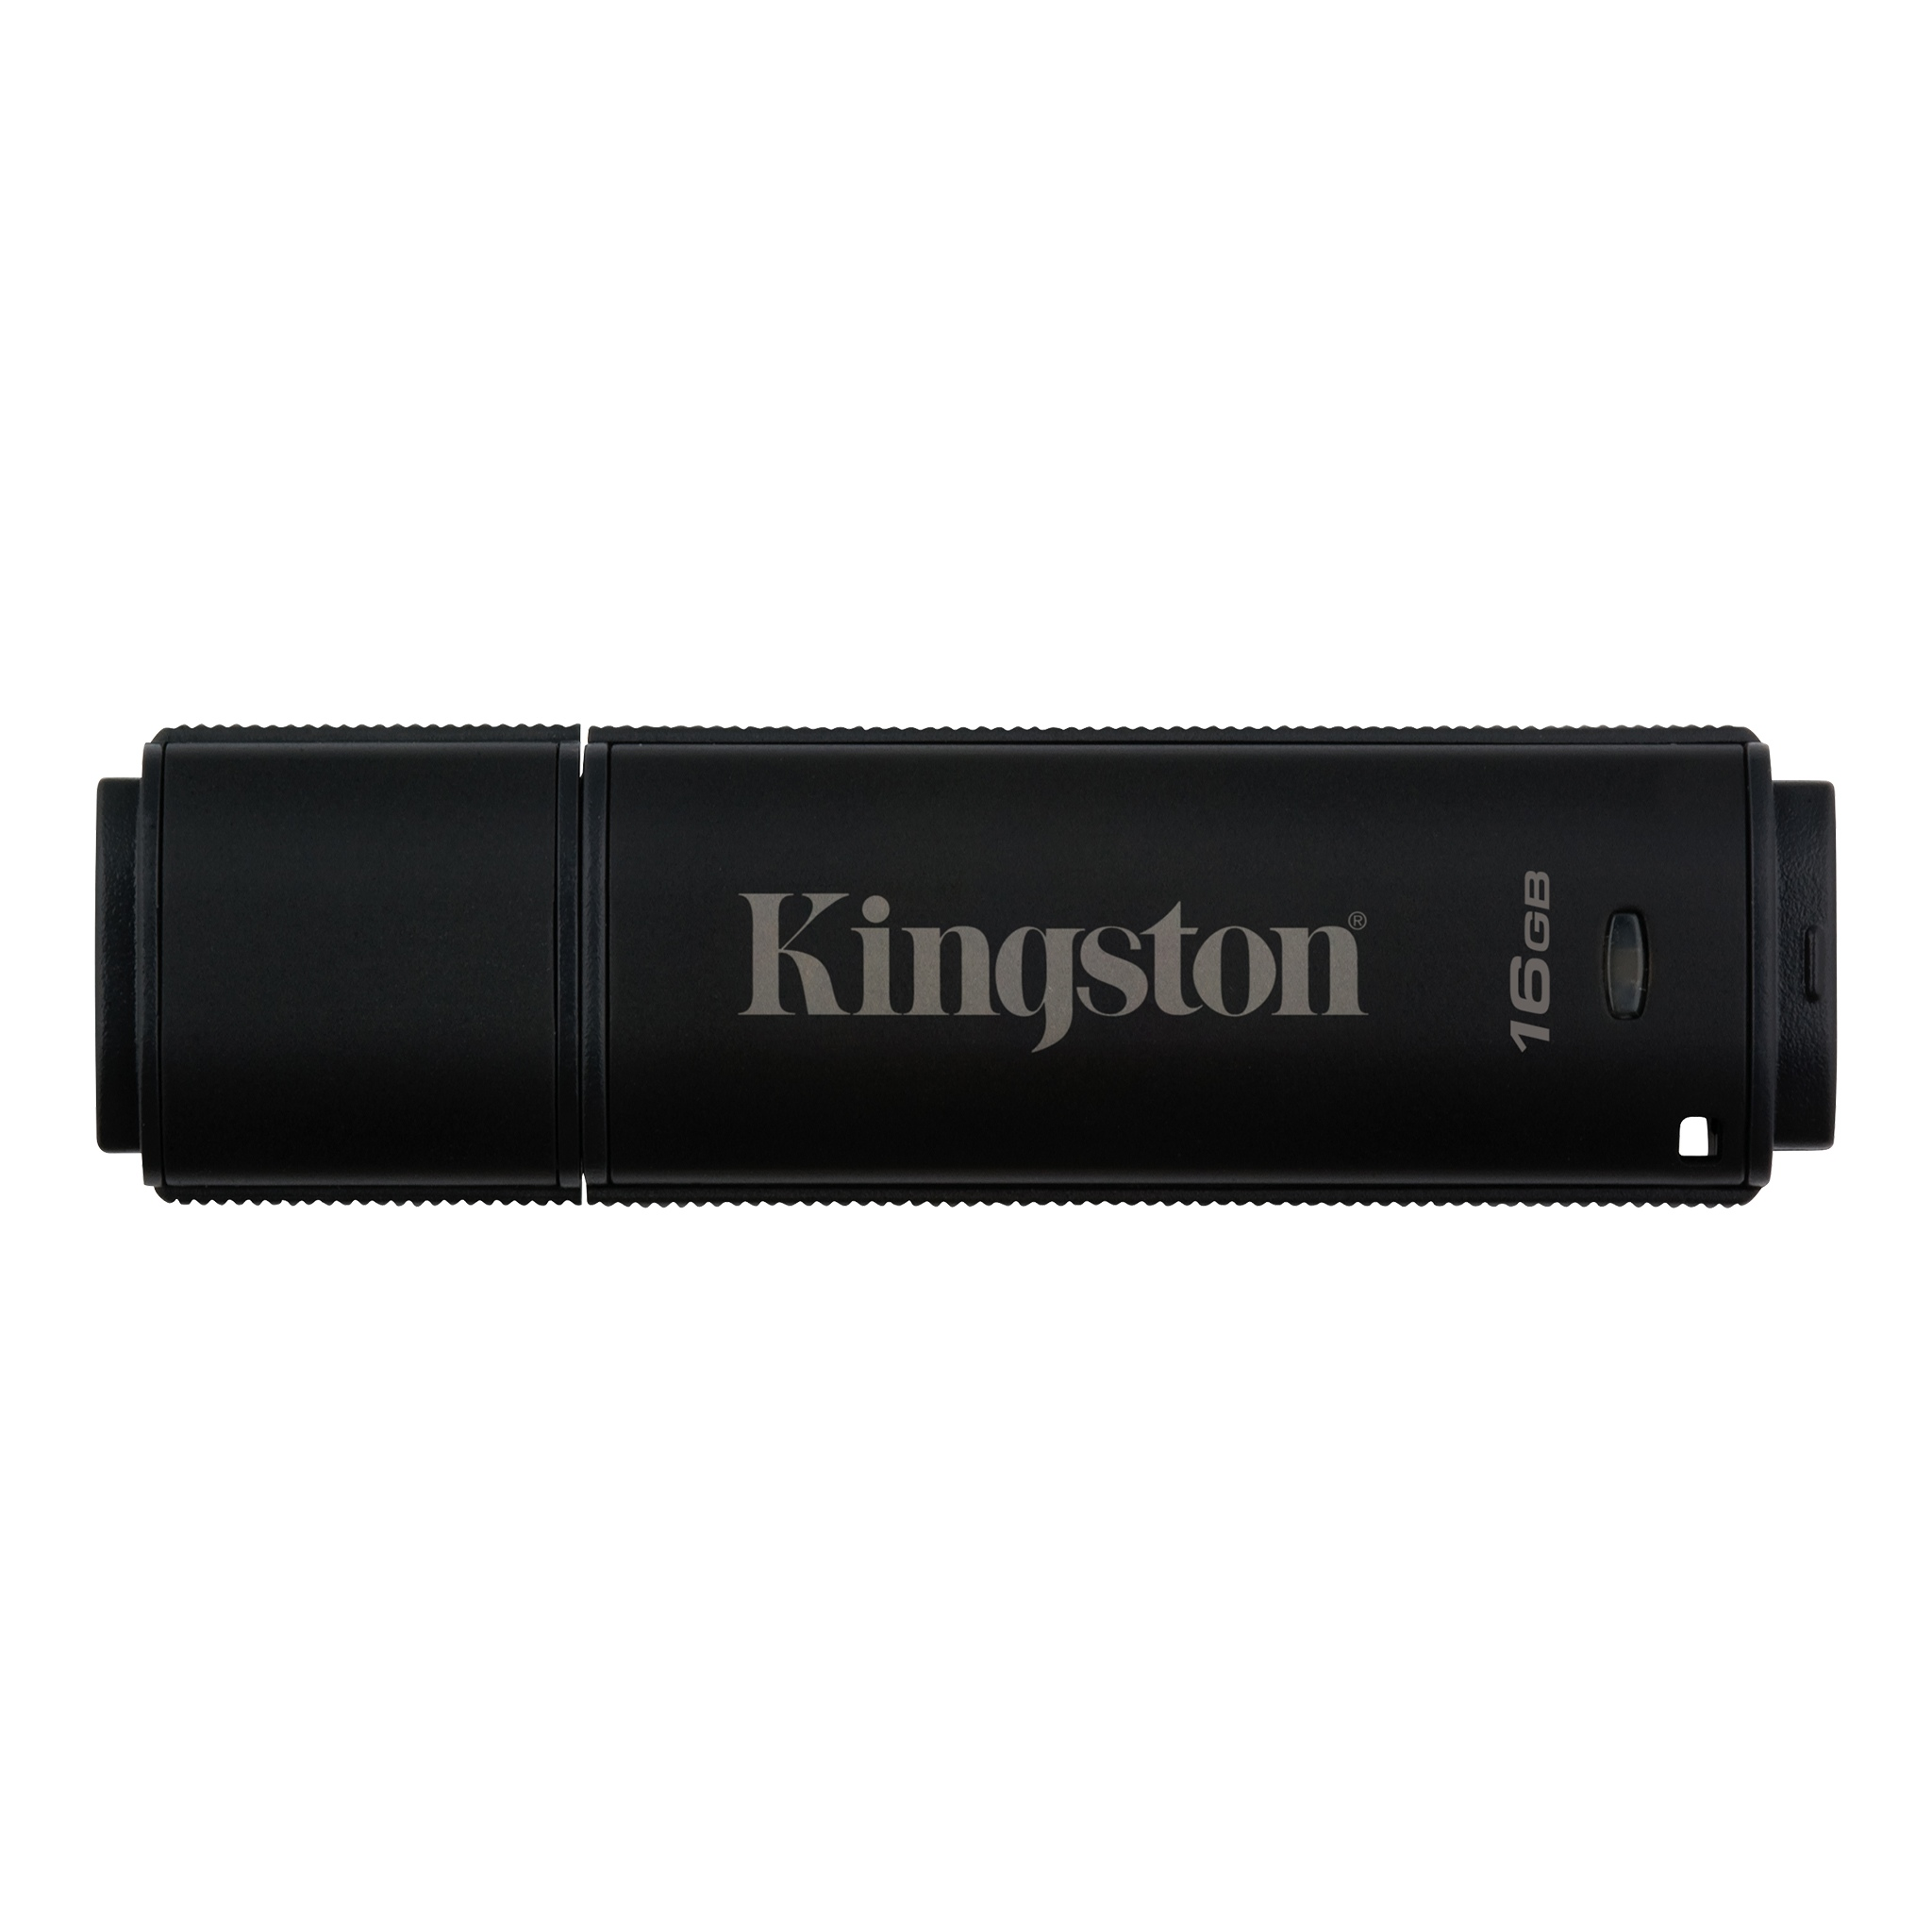 16GB Kingston USB 3.0 DT4000 G2 FIPS managed